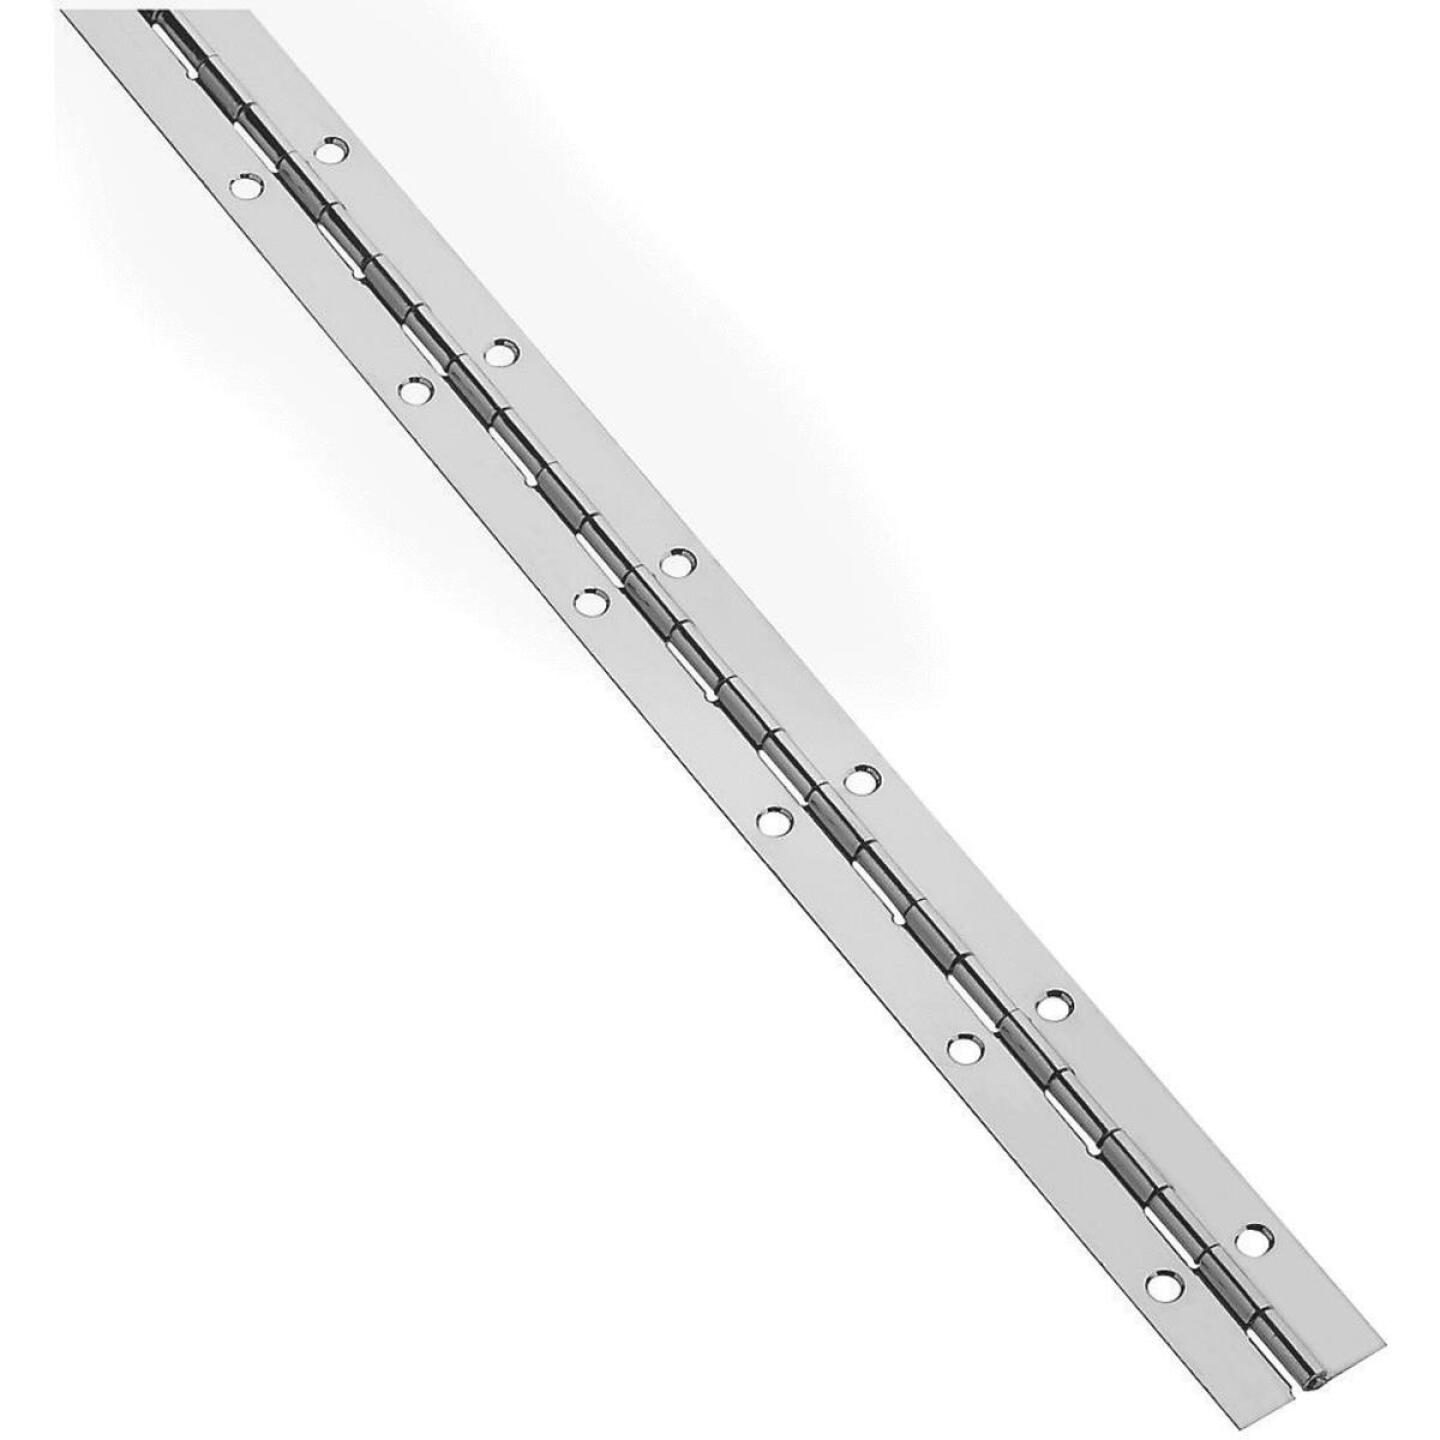 National Steel 1-1/16 In. x 48 In. Nickel Continuous Hinge Image 1